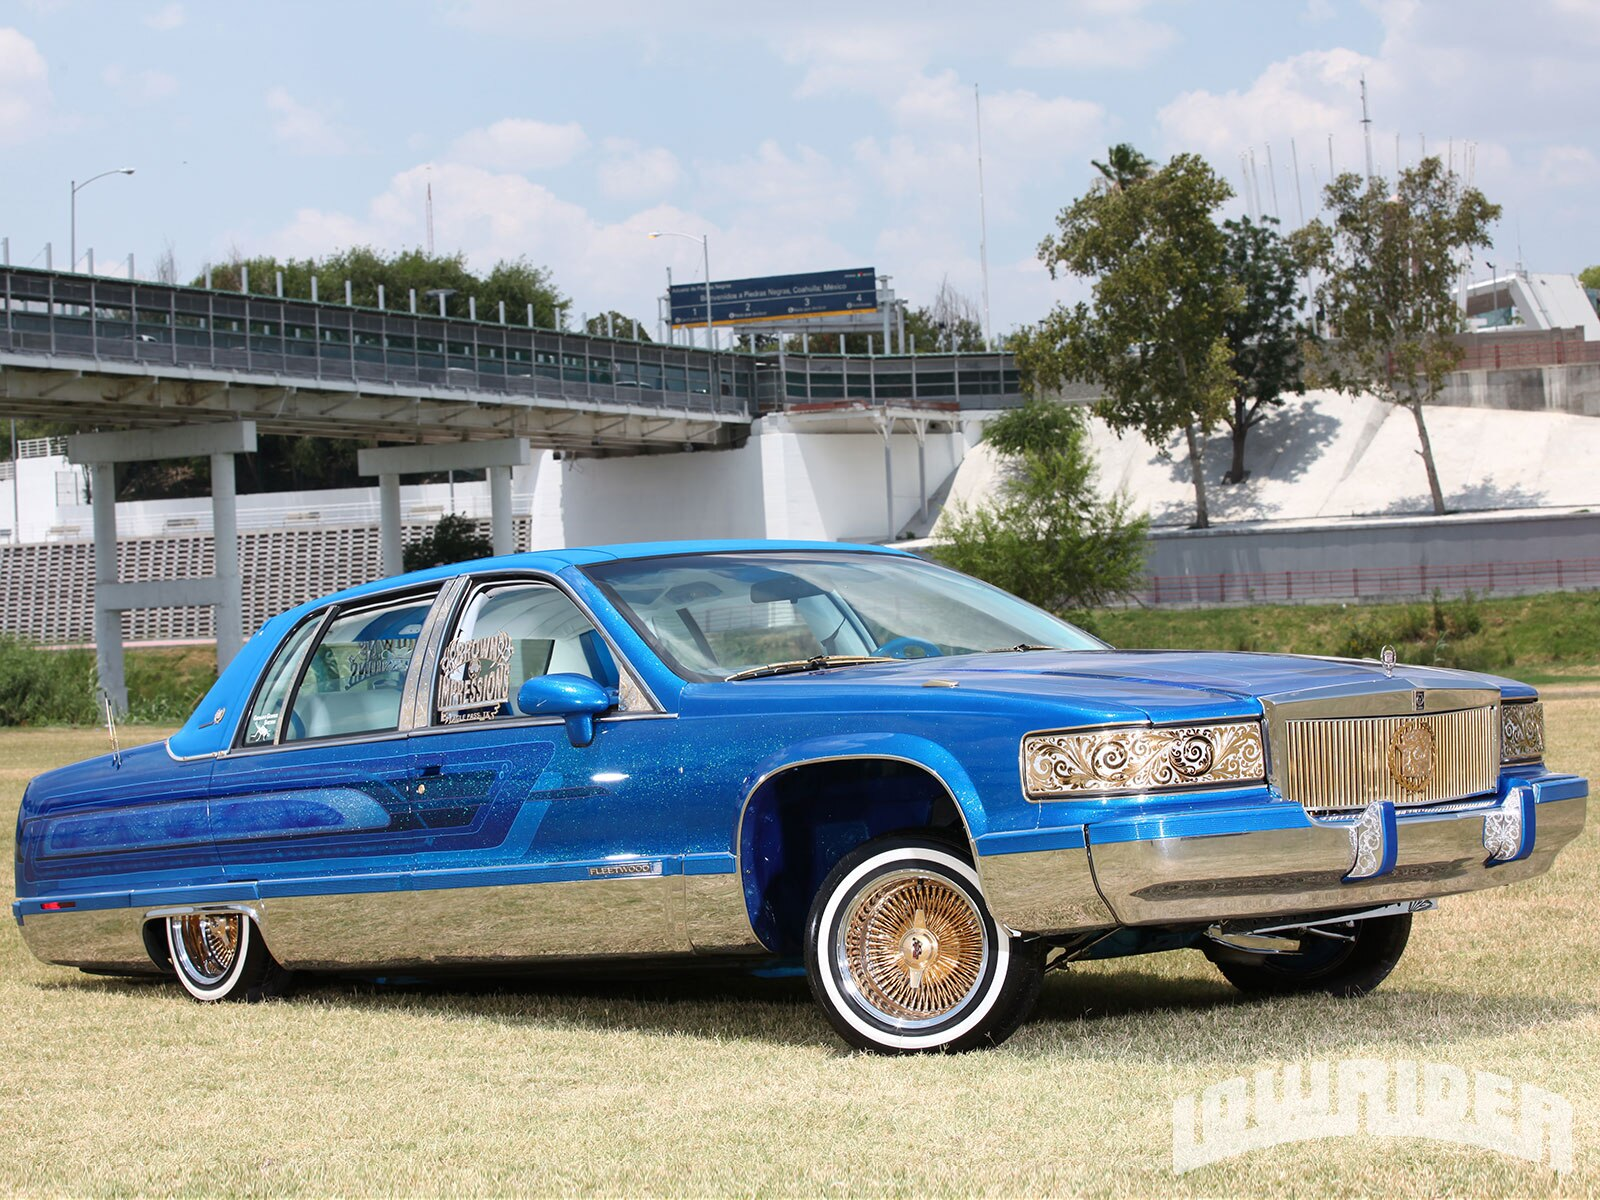 1303-lrmp-01-o-1994-cadillac-fleetwood-front-right-side-view1